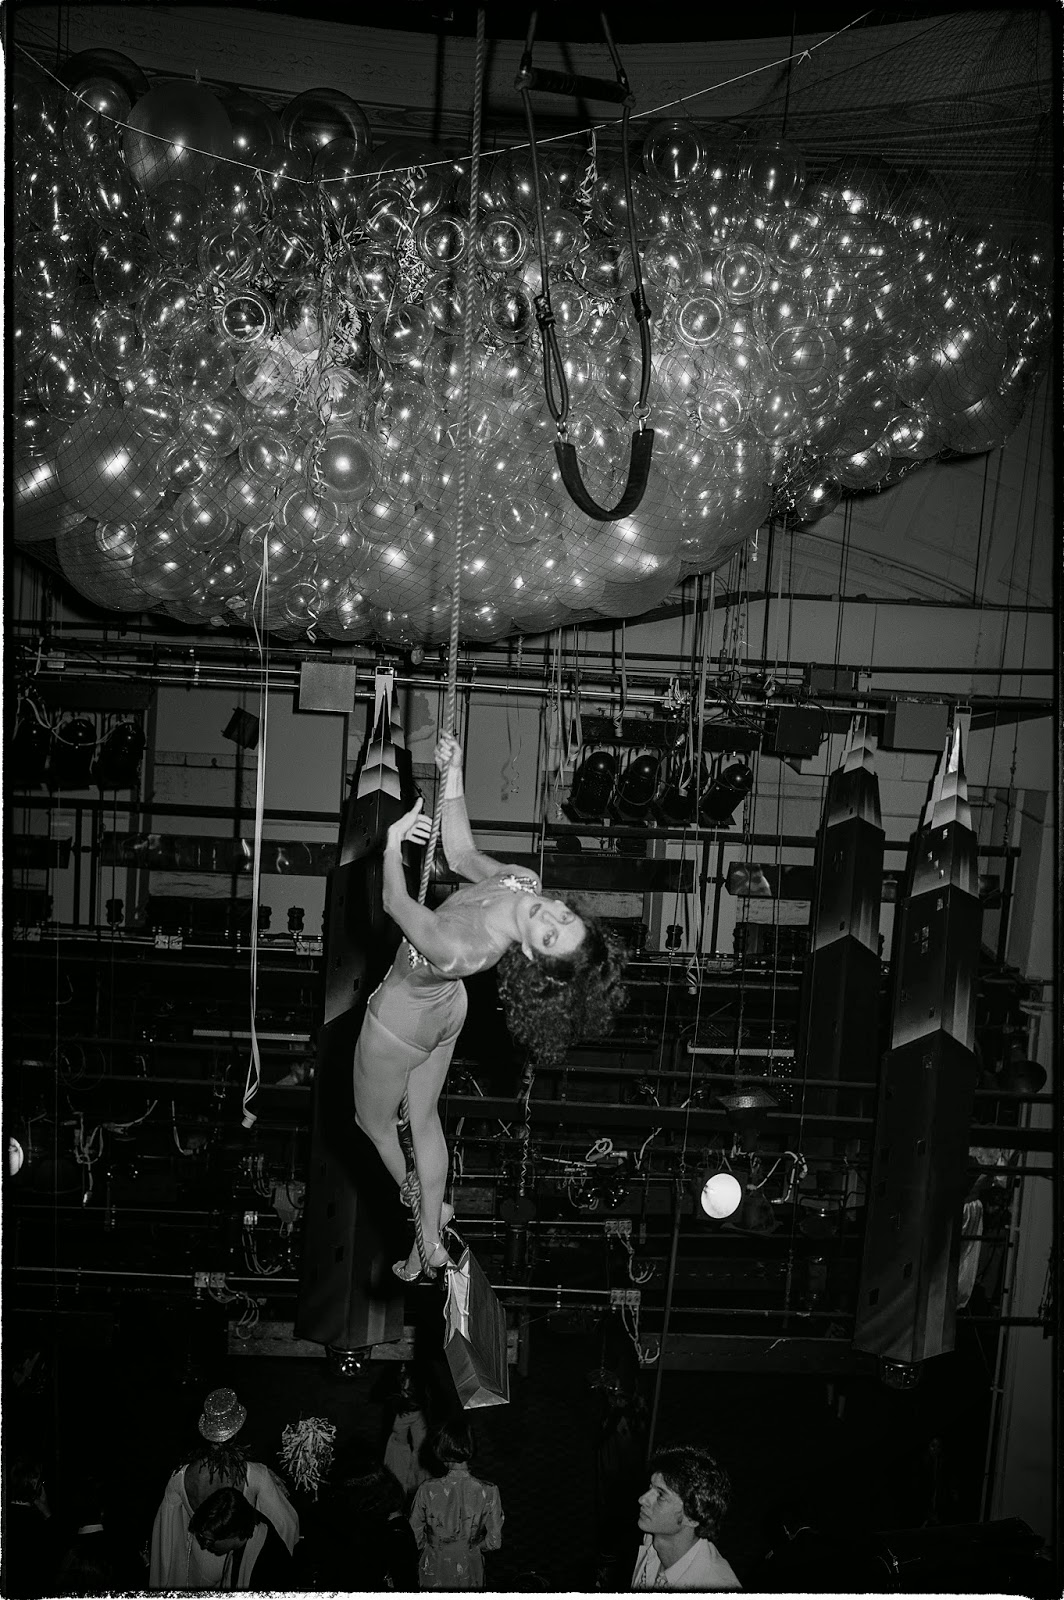 ELIZABETH AVEDON JOURNAL: TOD PAPAGEORGE: Studio 54, 1978-1980